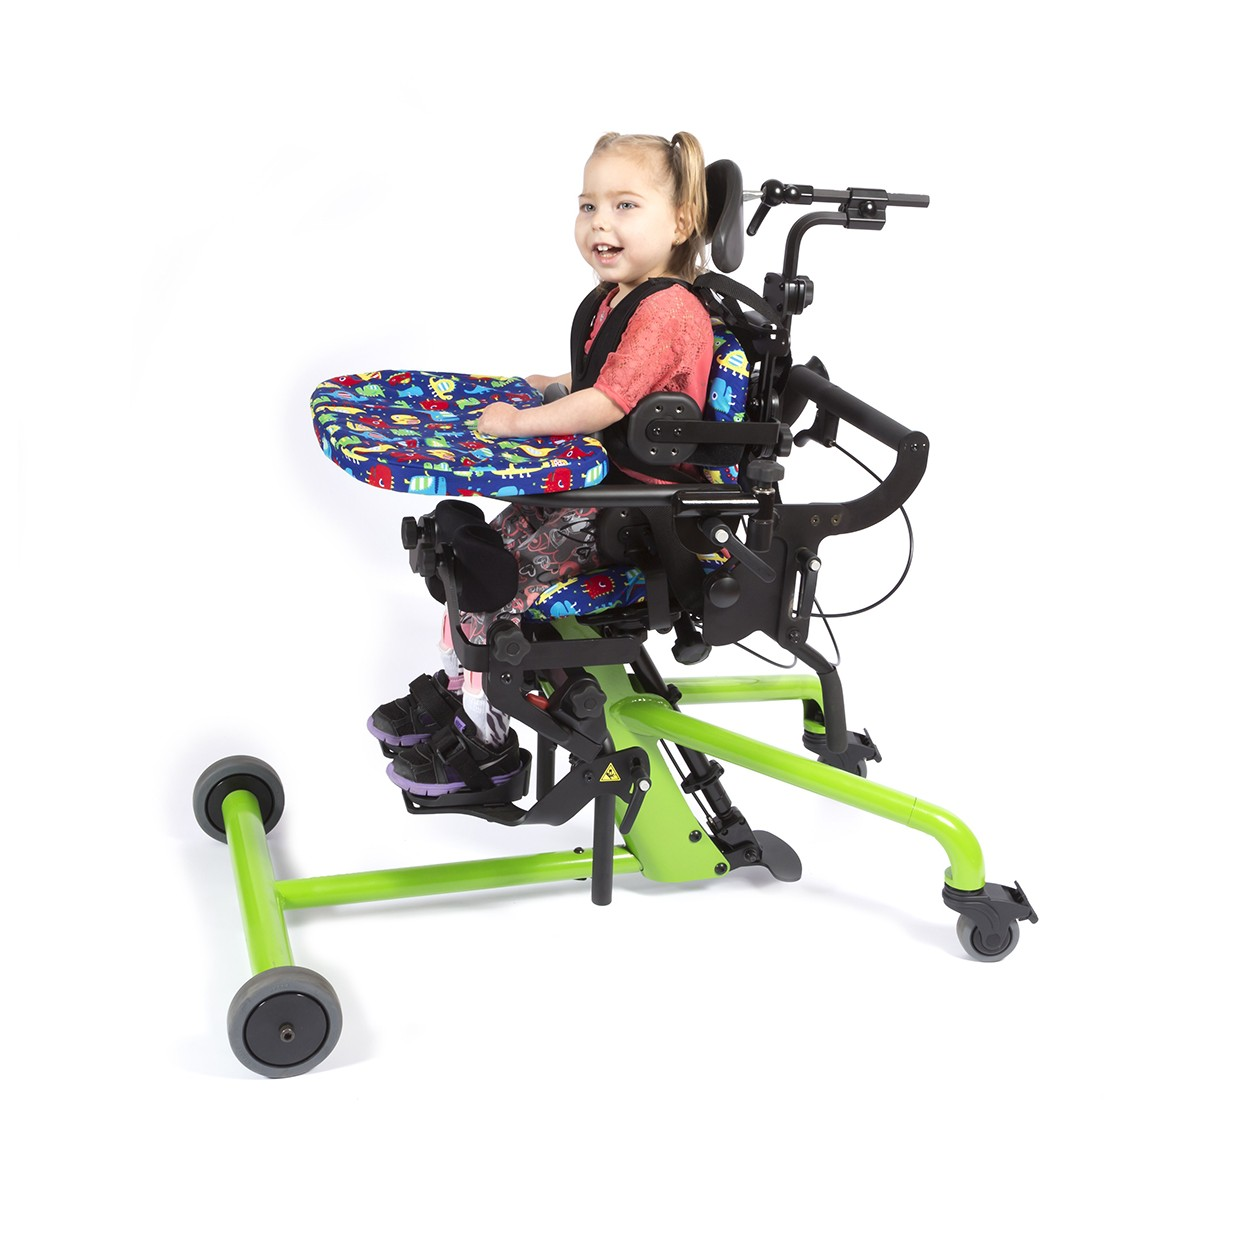 Child sitting in a Green EasyStand Bantam Small